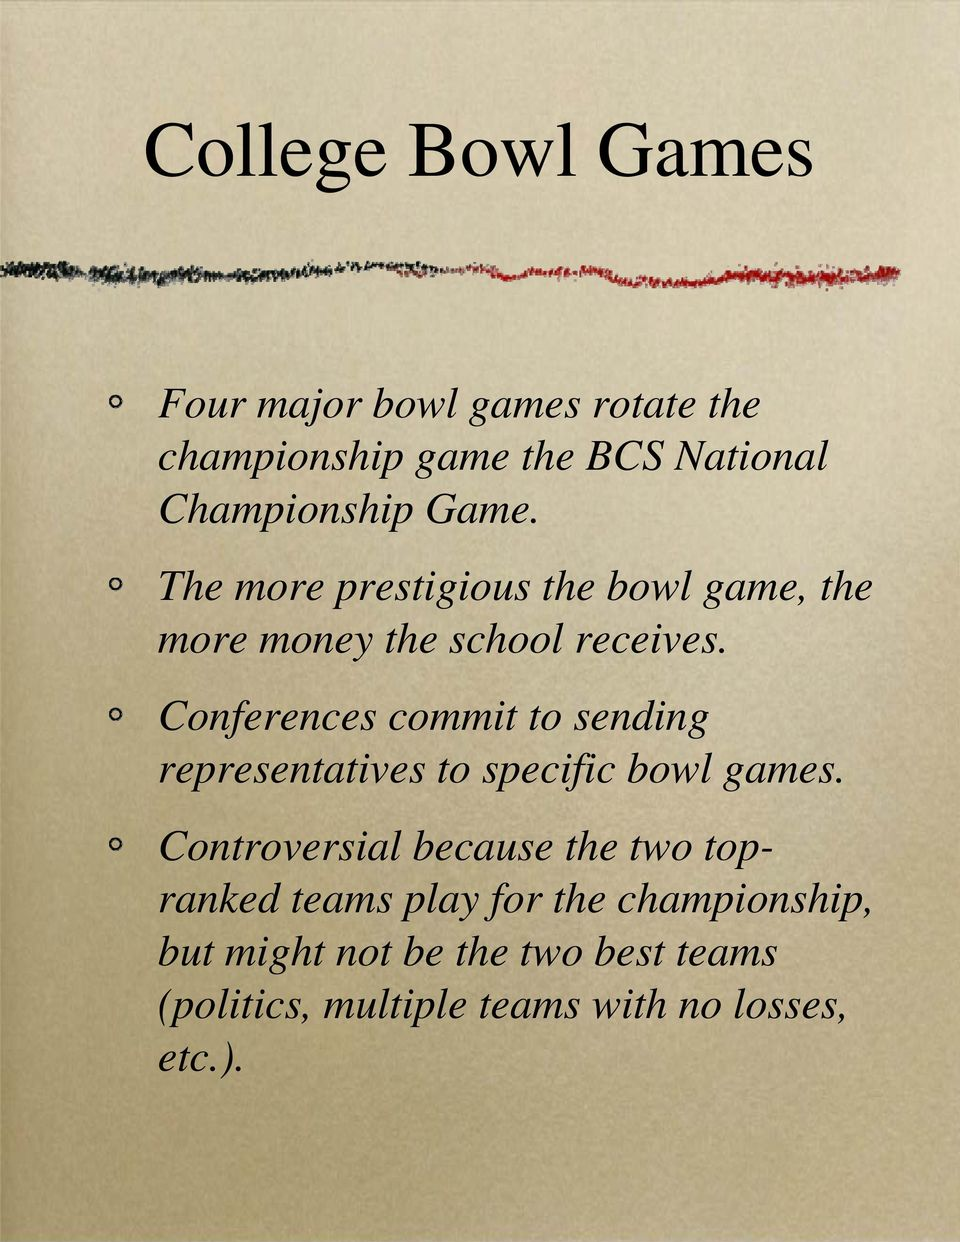 Conferences commit to sending representatives to specific bowl games.